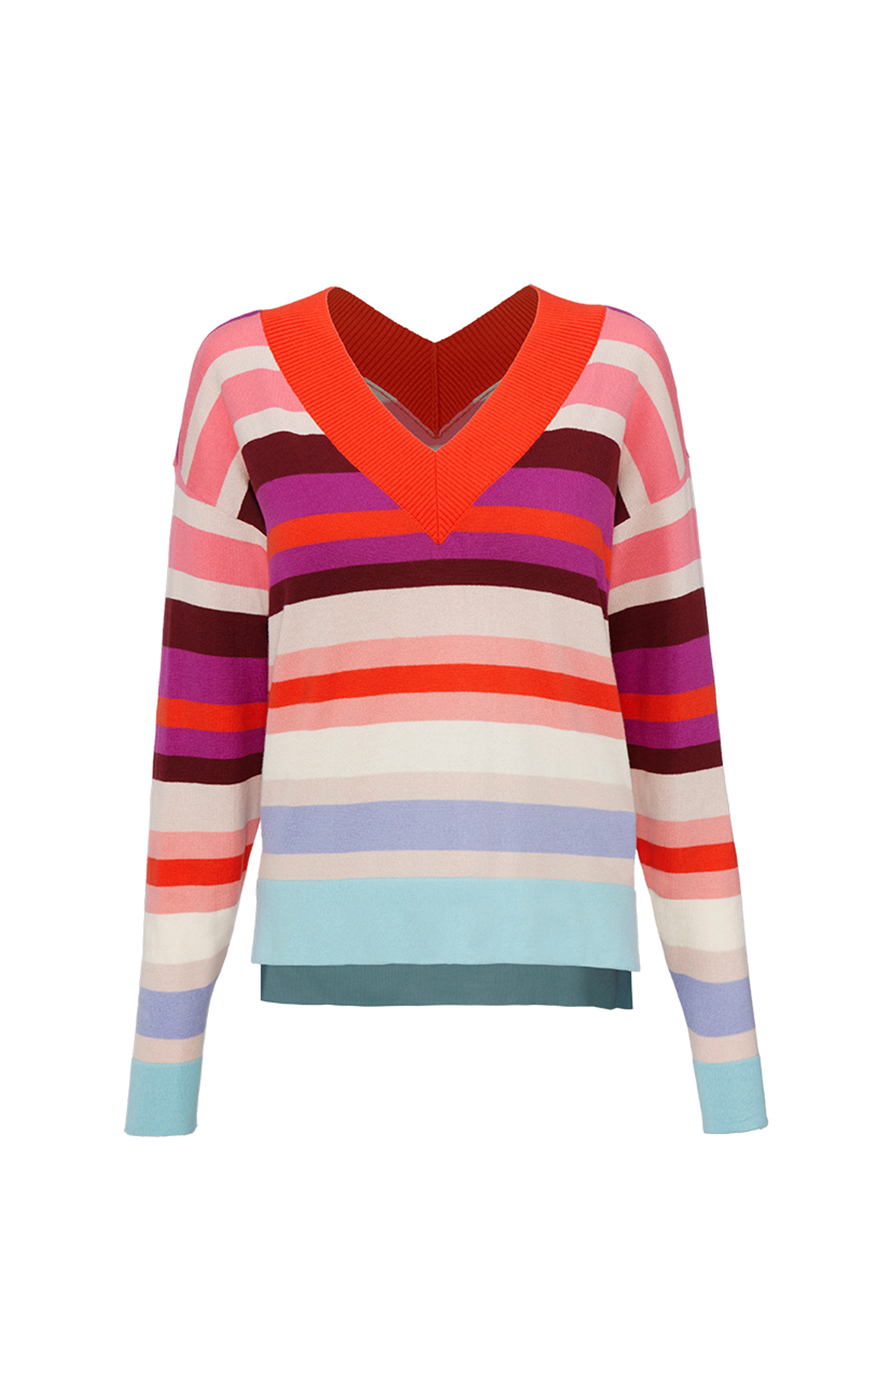 cabi's Sweet Tooth Pullover